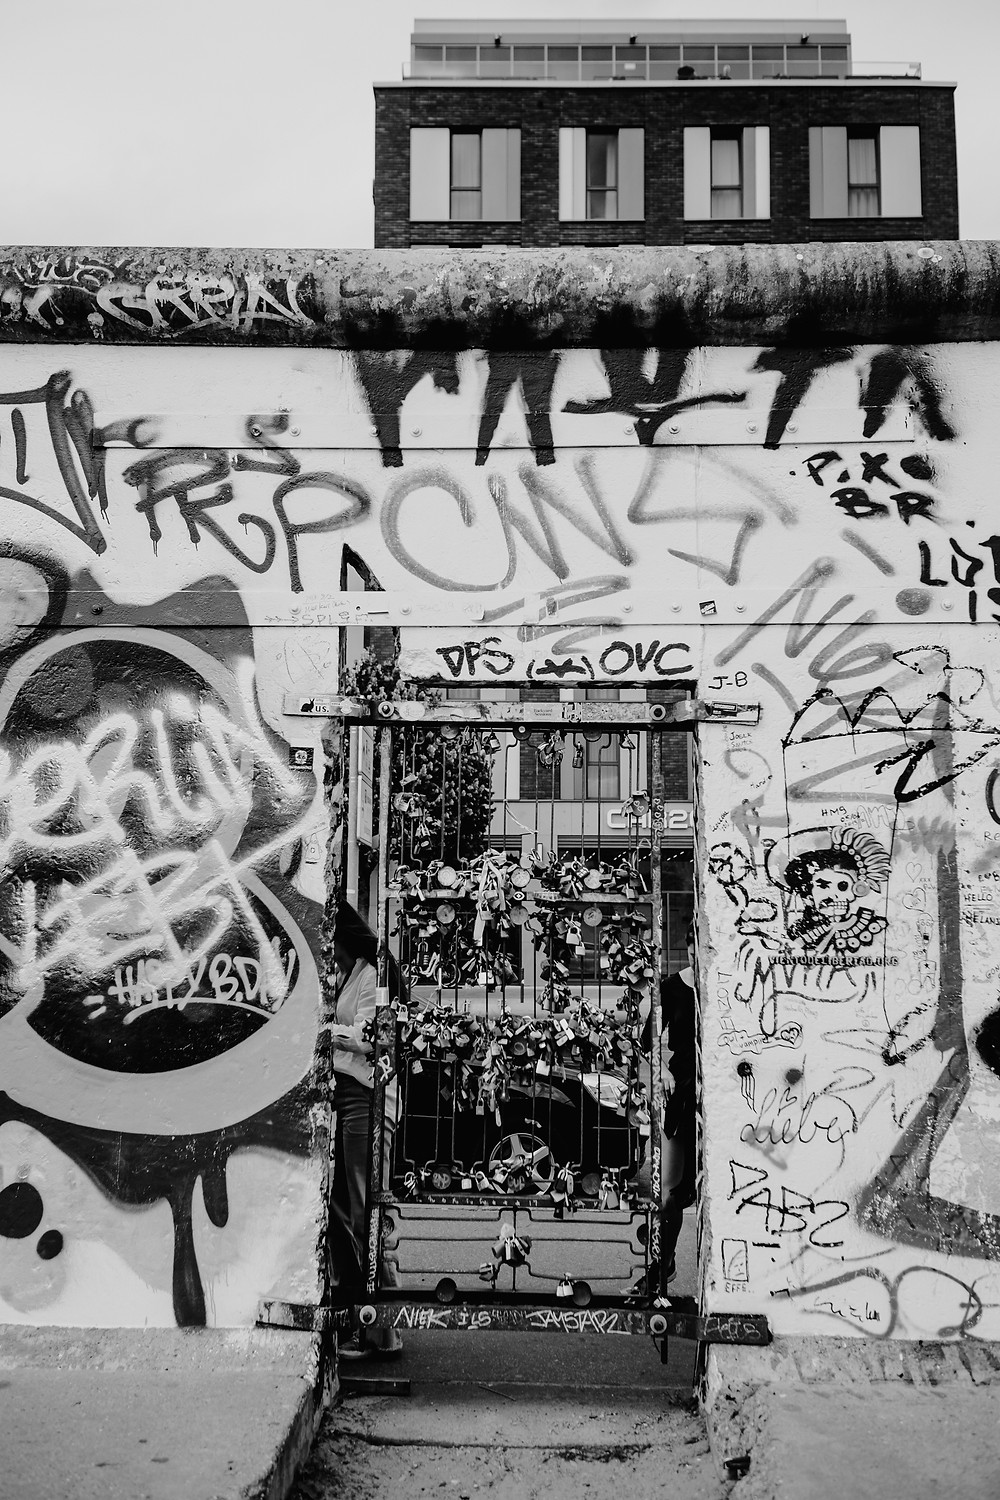 Berlin graffiti and street art. Photographed by Nicole Leanne Photography.